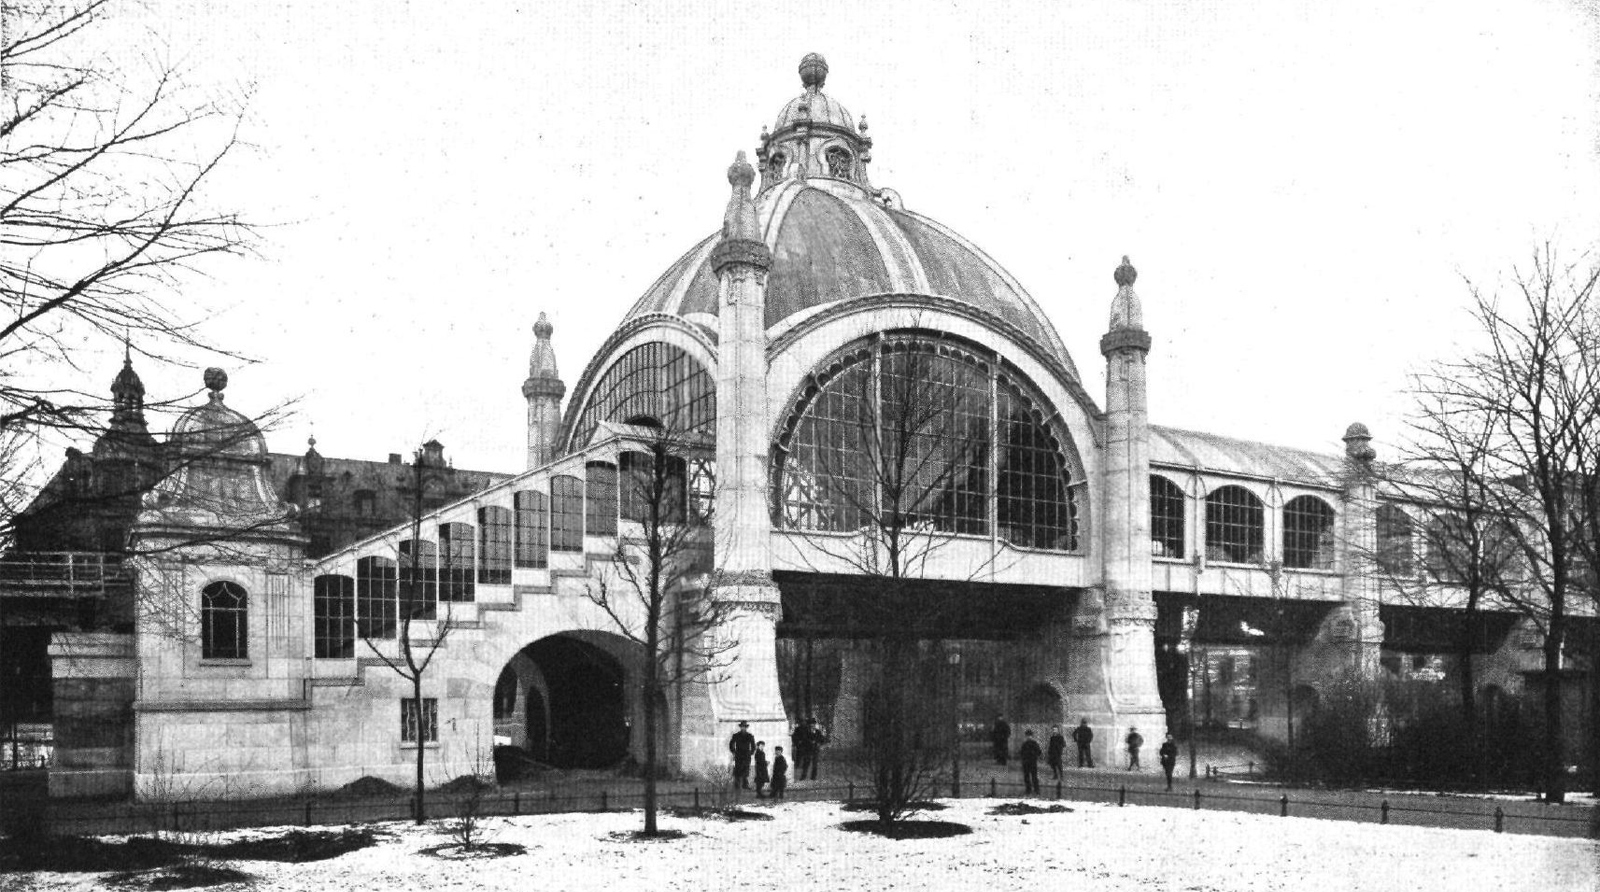 Berlin's Untergrundbahn network opened in opened in 1902 and is spread over 10 'u' lines. Pictured: Nollendorfplatz station circa 1903